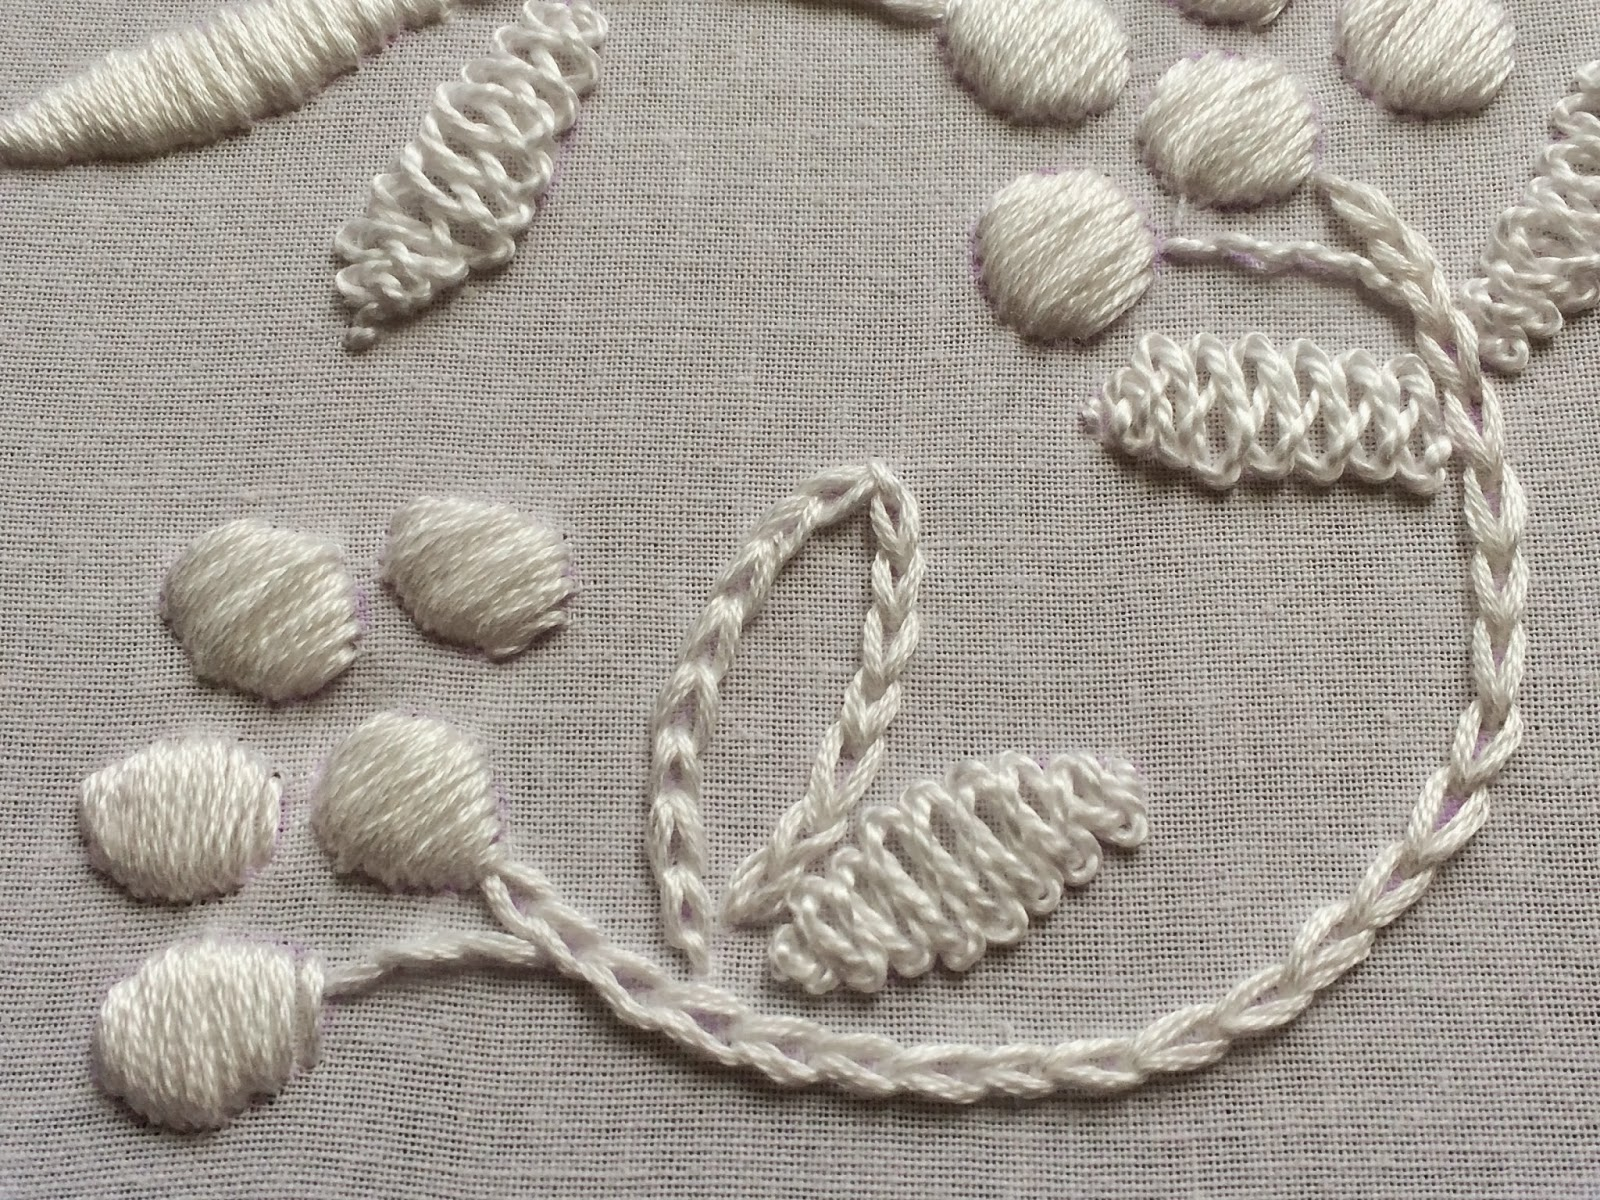 mountmellick embroidery whitework